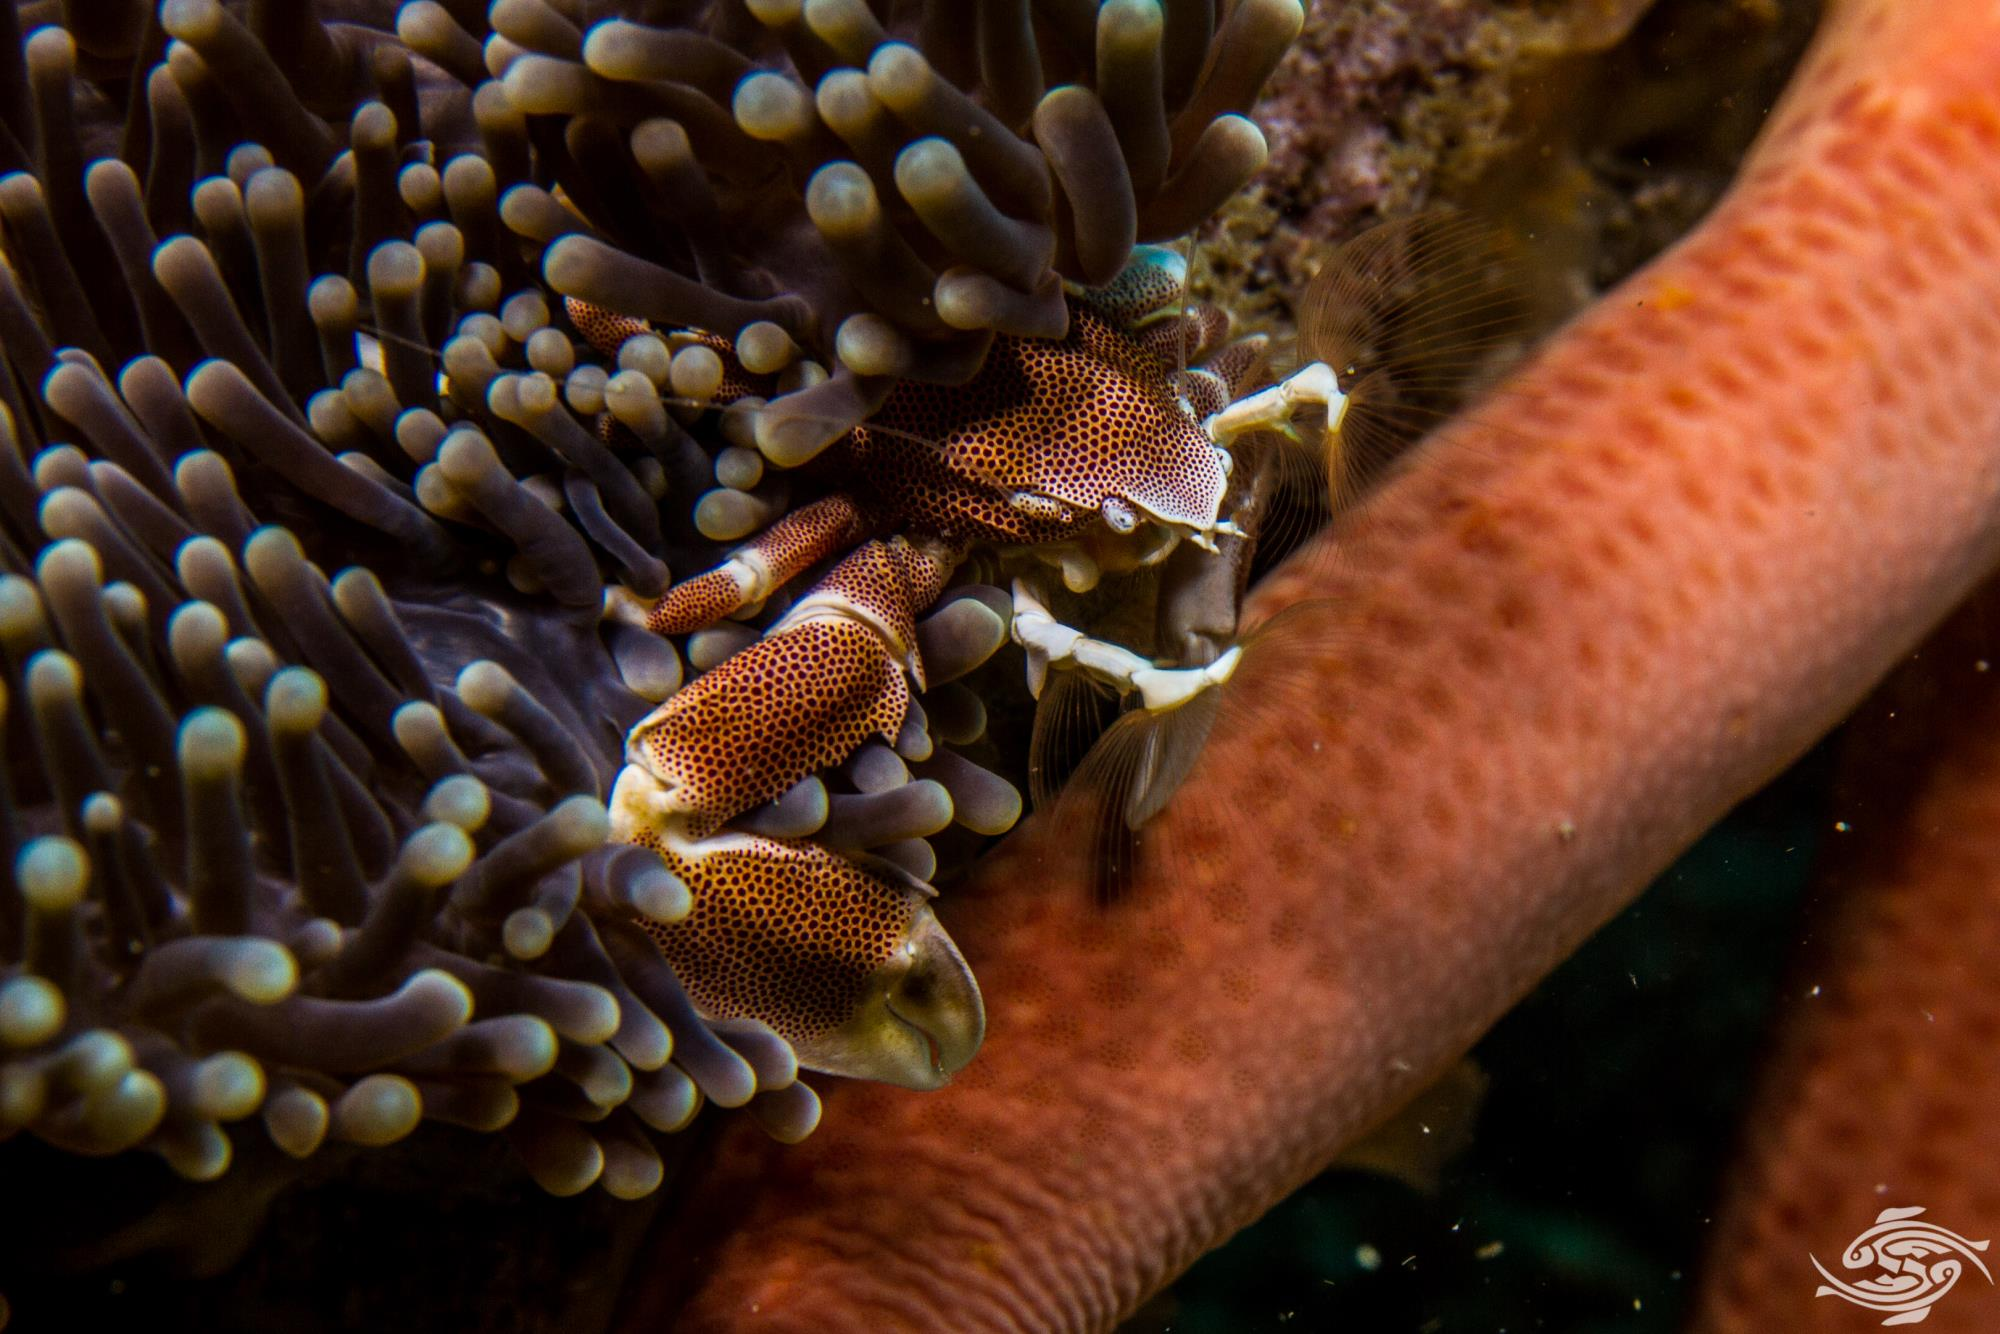 Porcelain Anemone Crab, Neopetrolisthes maculatus is also known as the Spotted porcelain crab